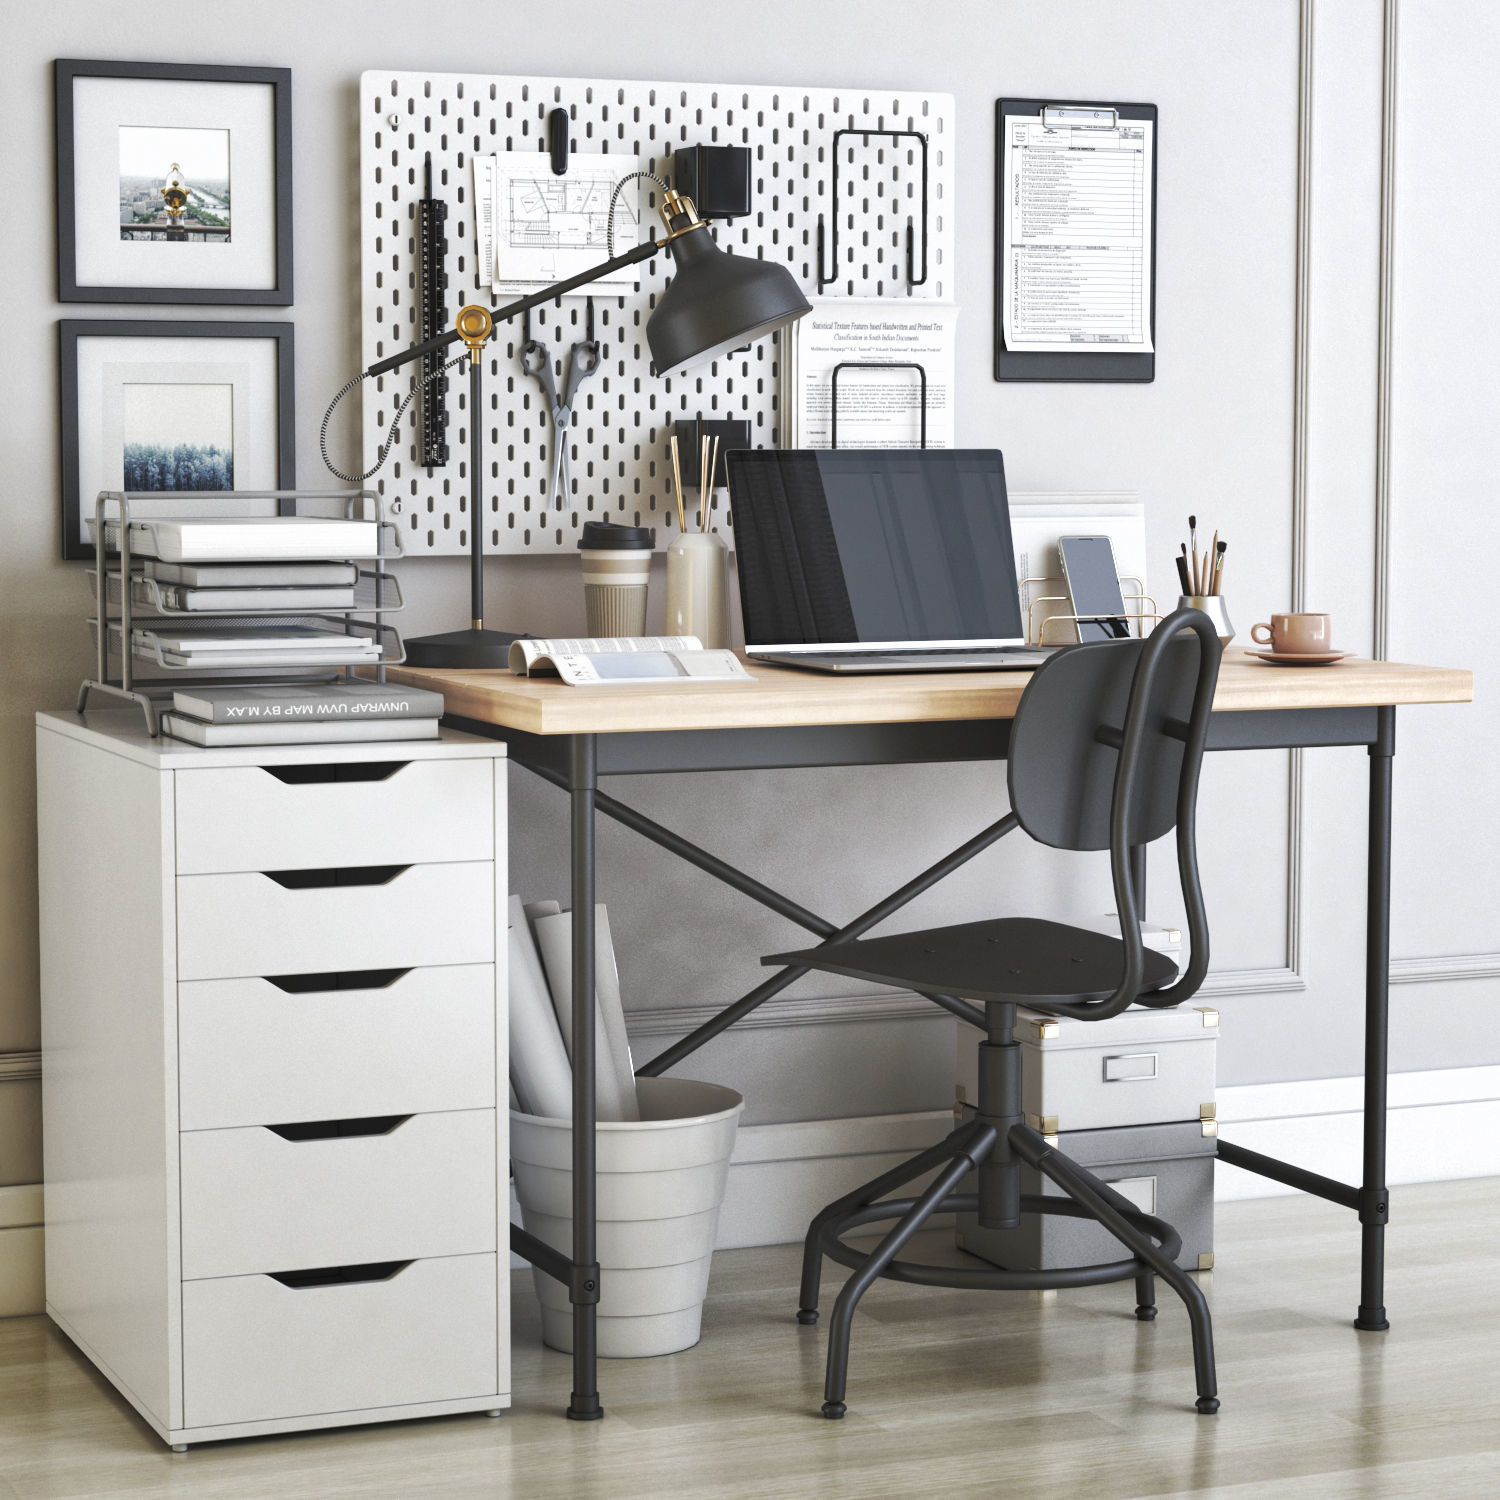 Office workplace 32